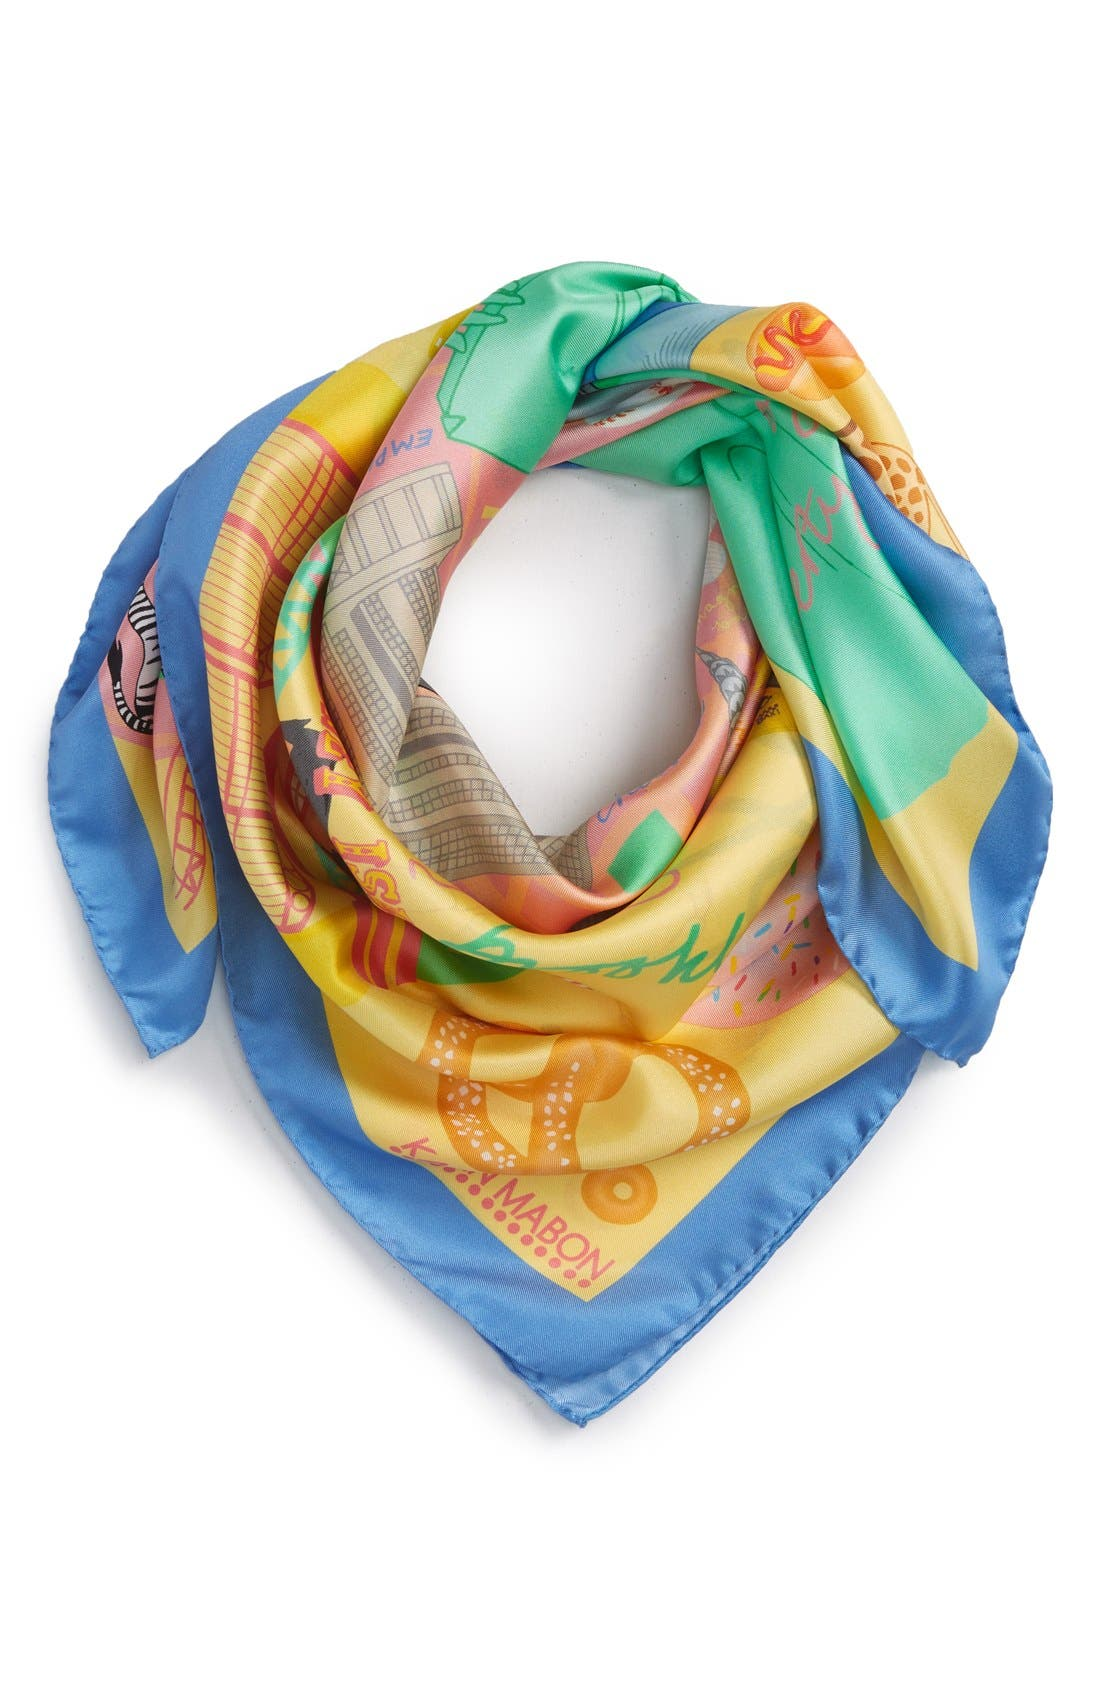 Alternate Image 1 Selected - Karen Mabon 'New York, New York' Silk Square Scarf